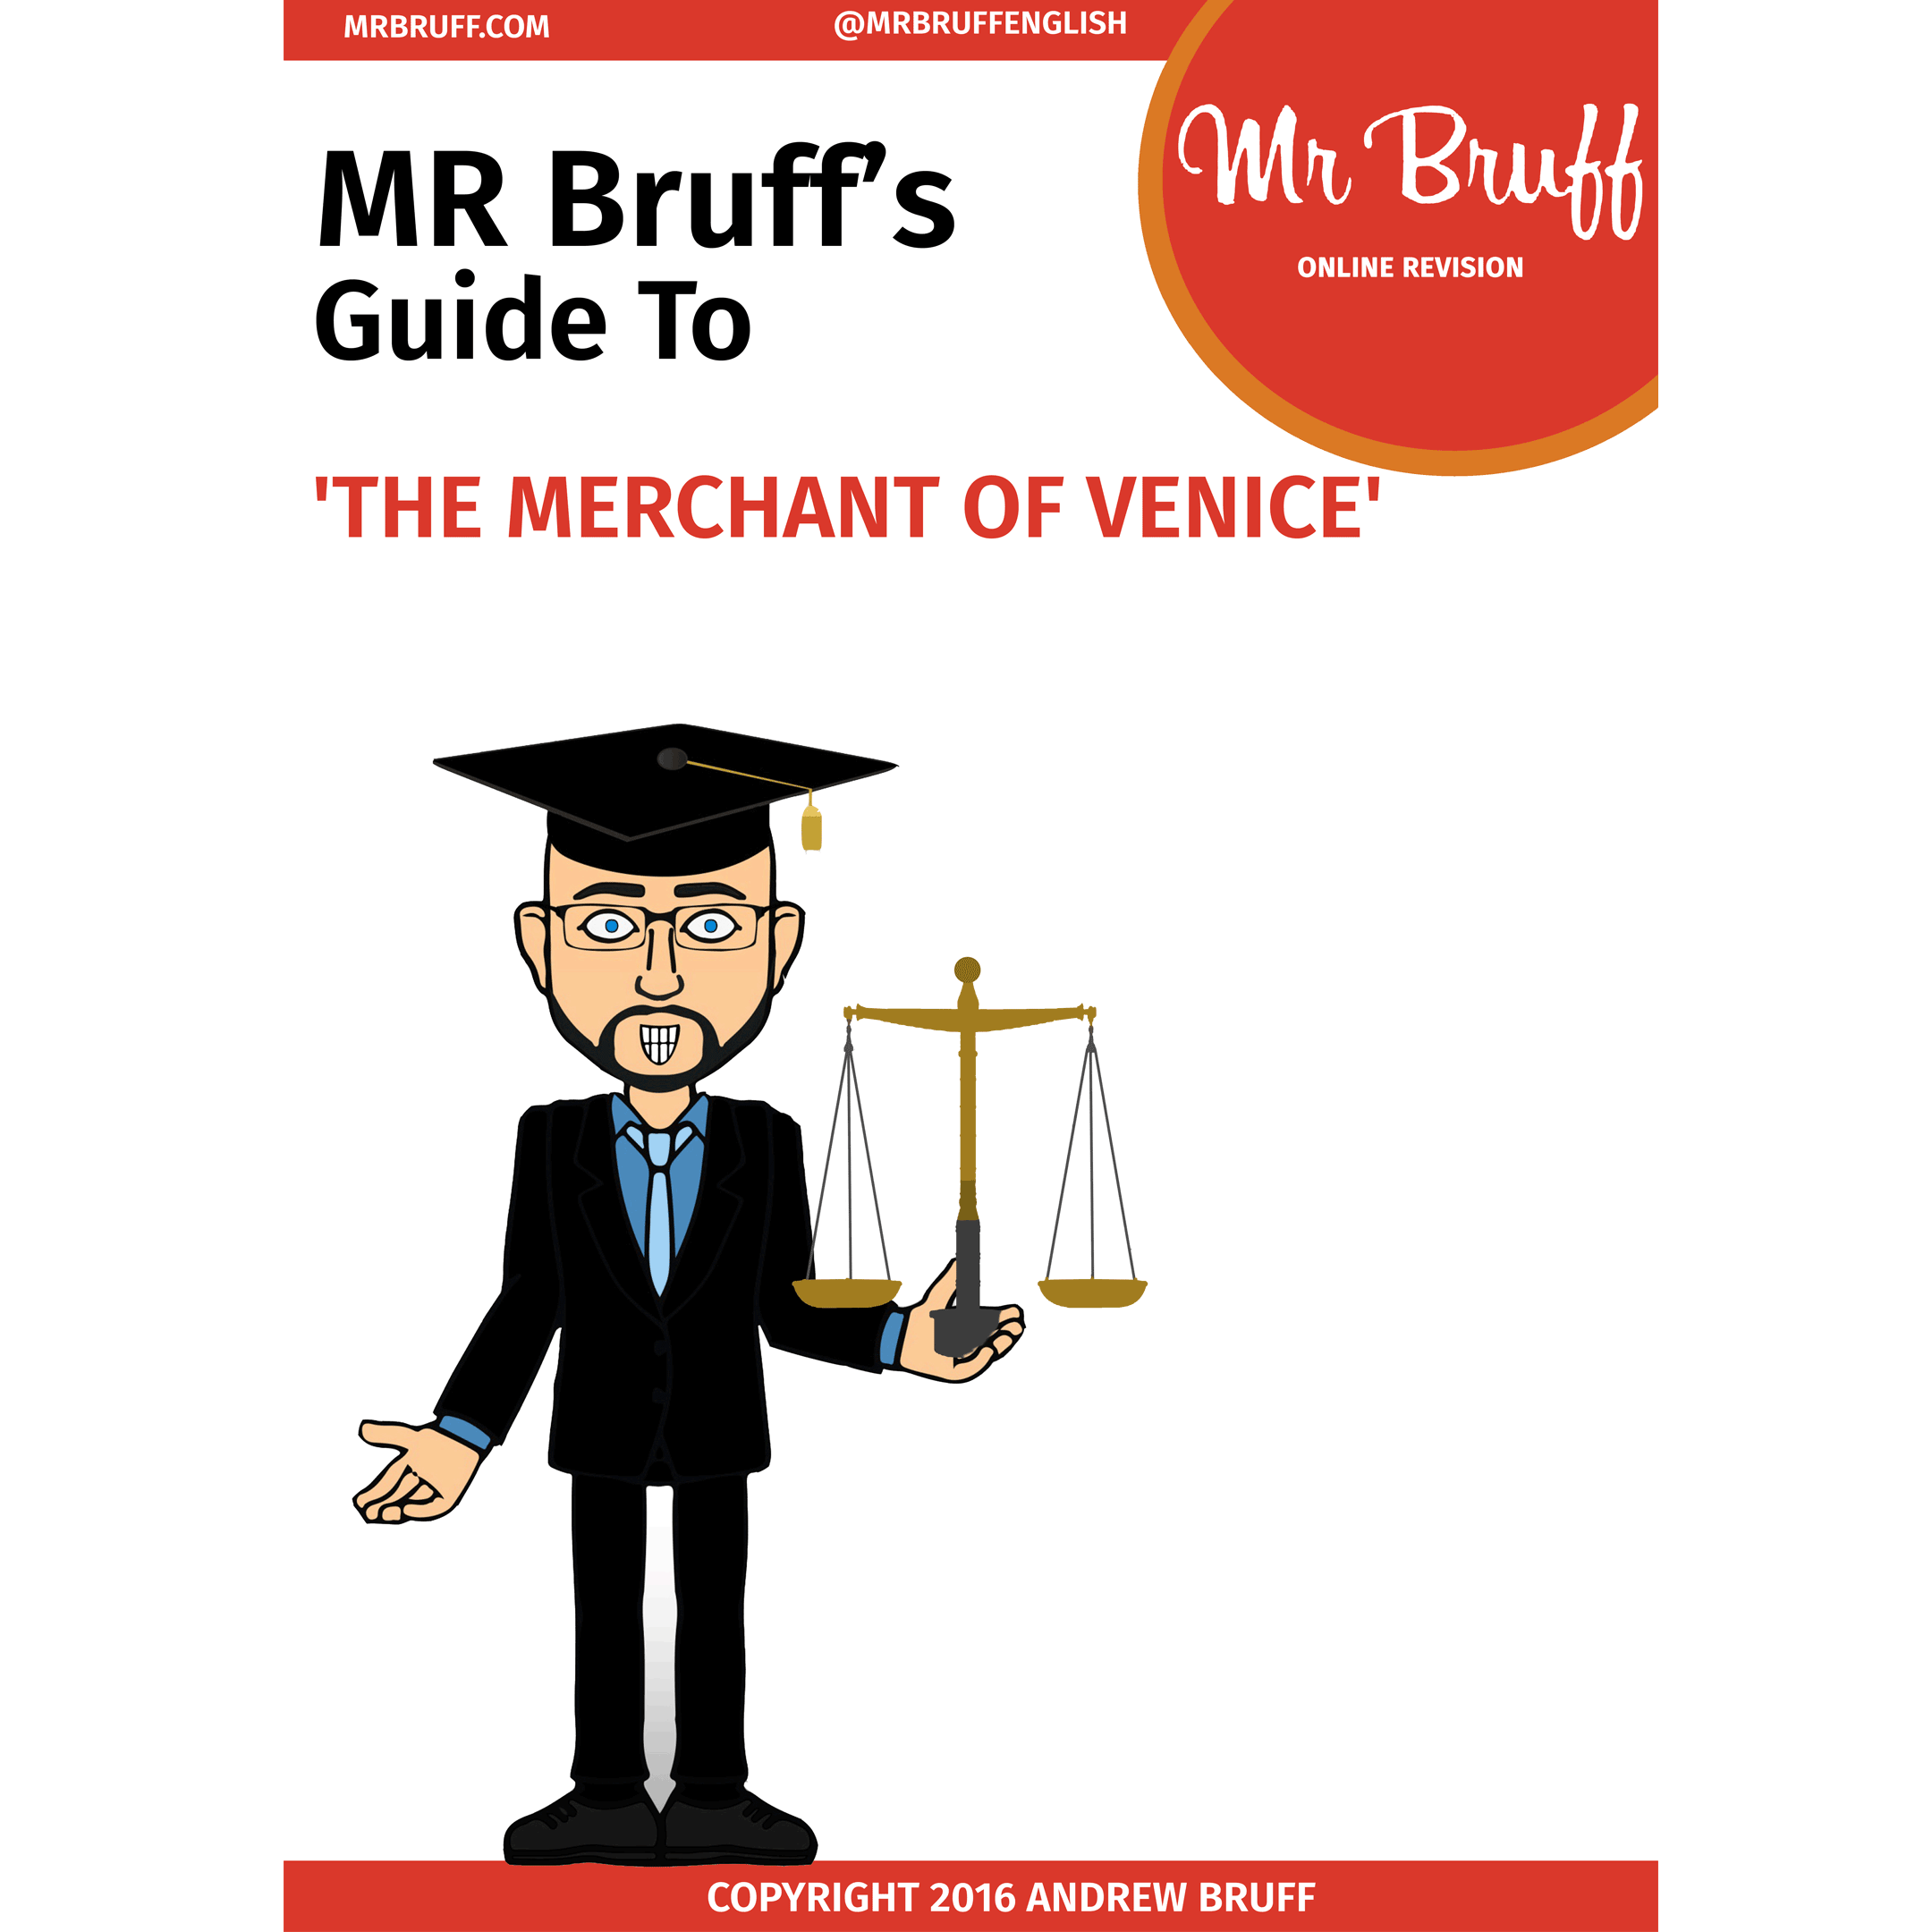 Mr Bruff's Guide To 'the Merchant Of Venice'